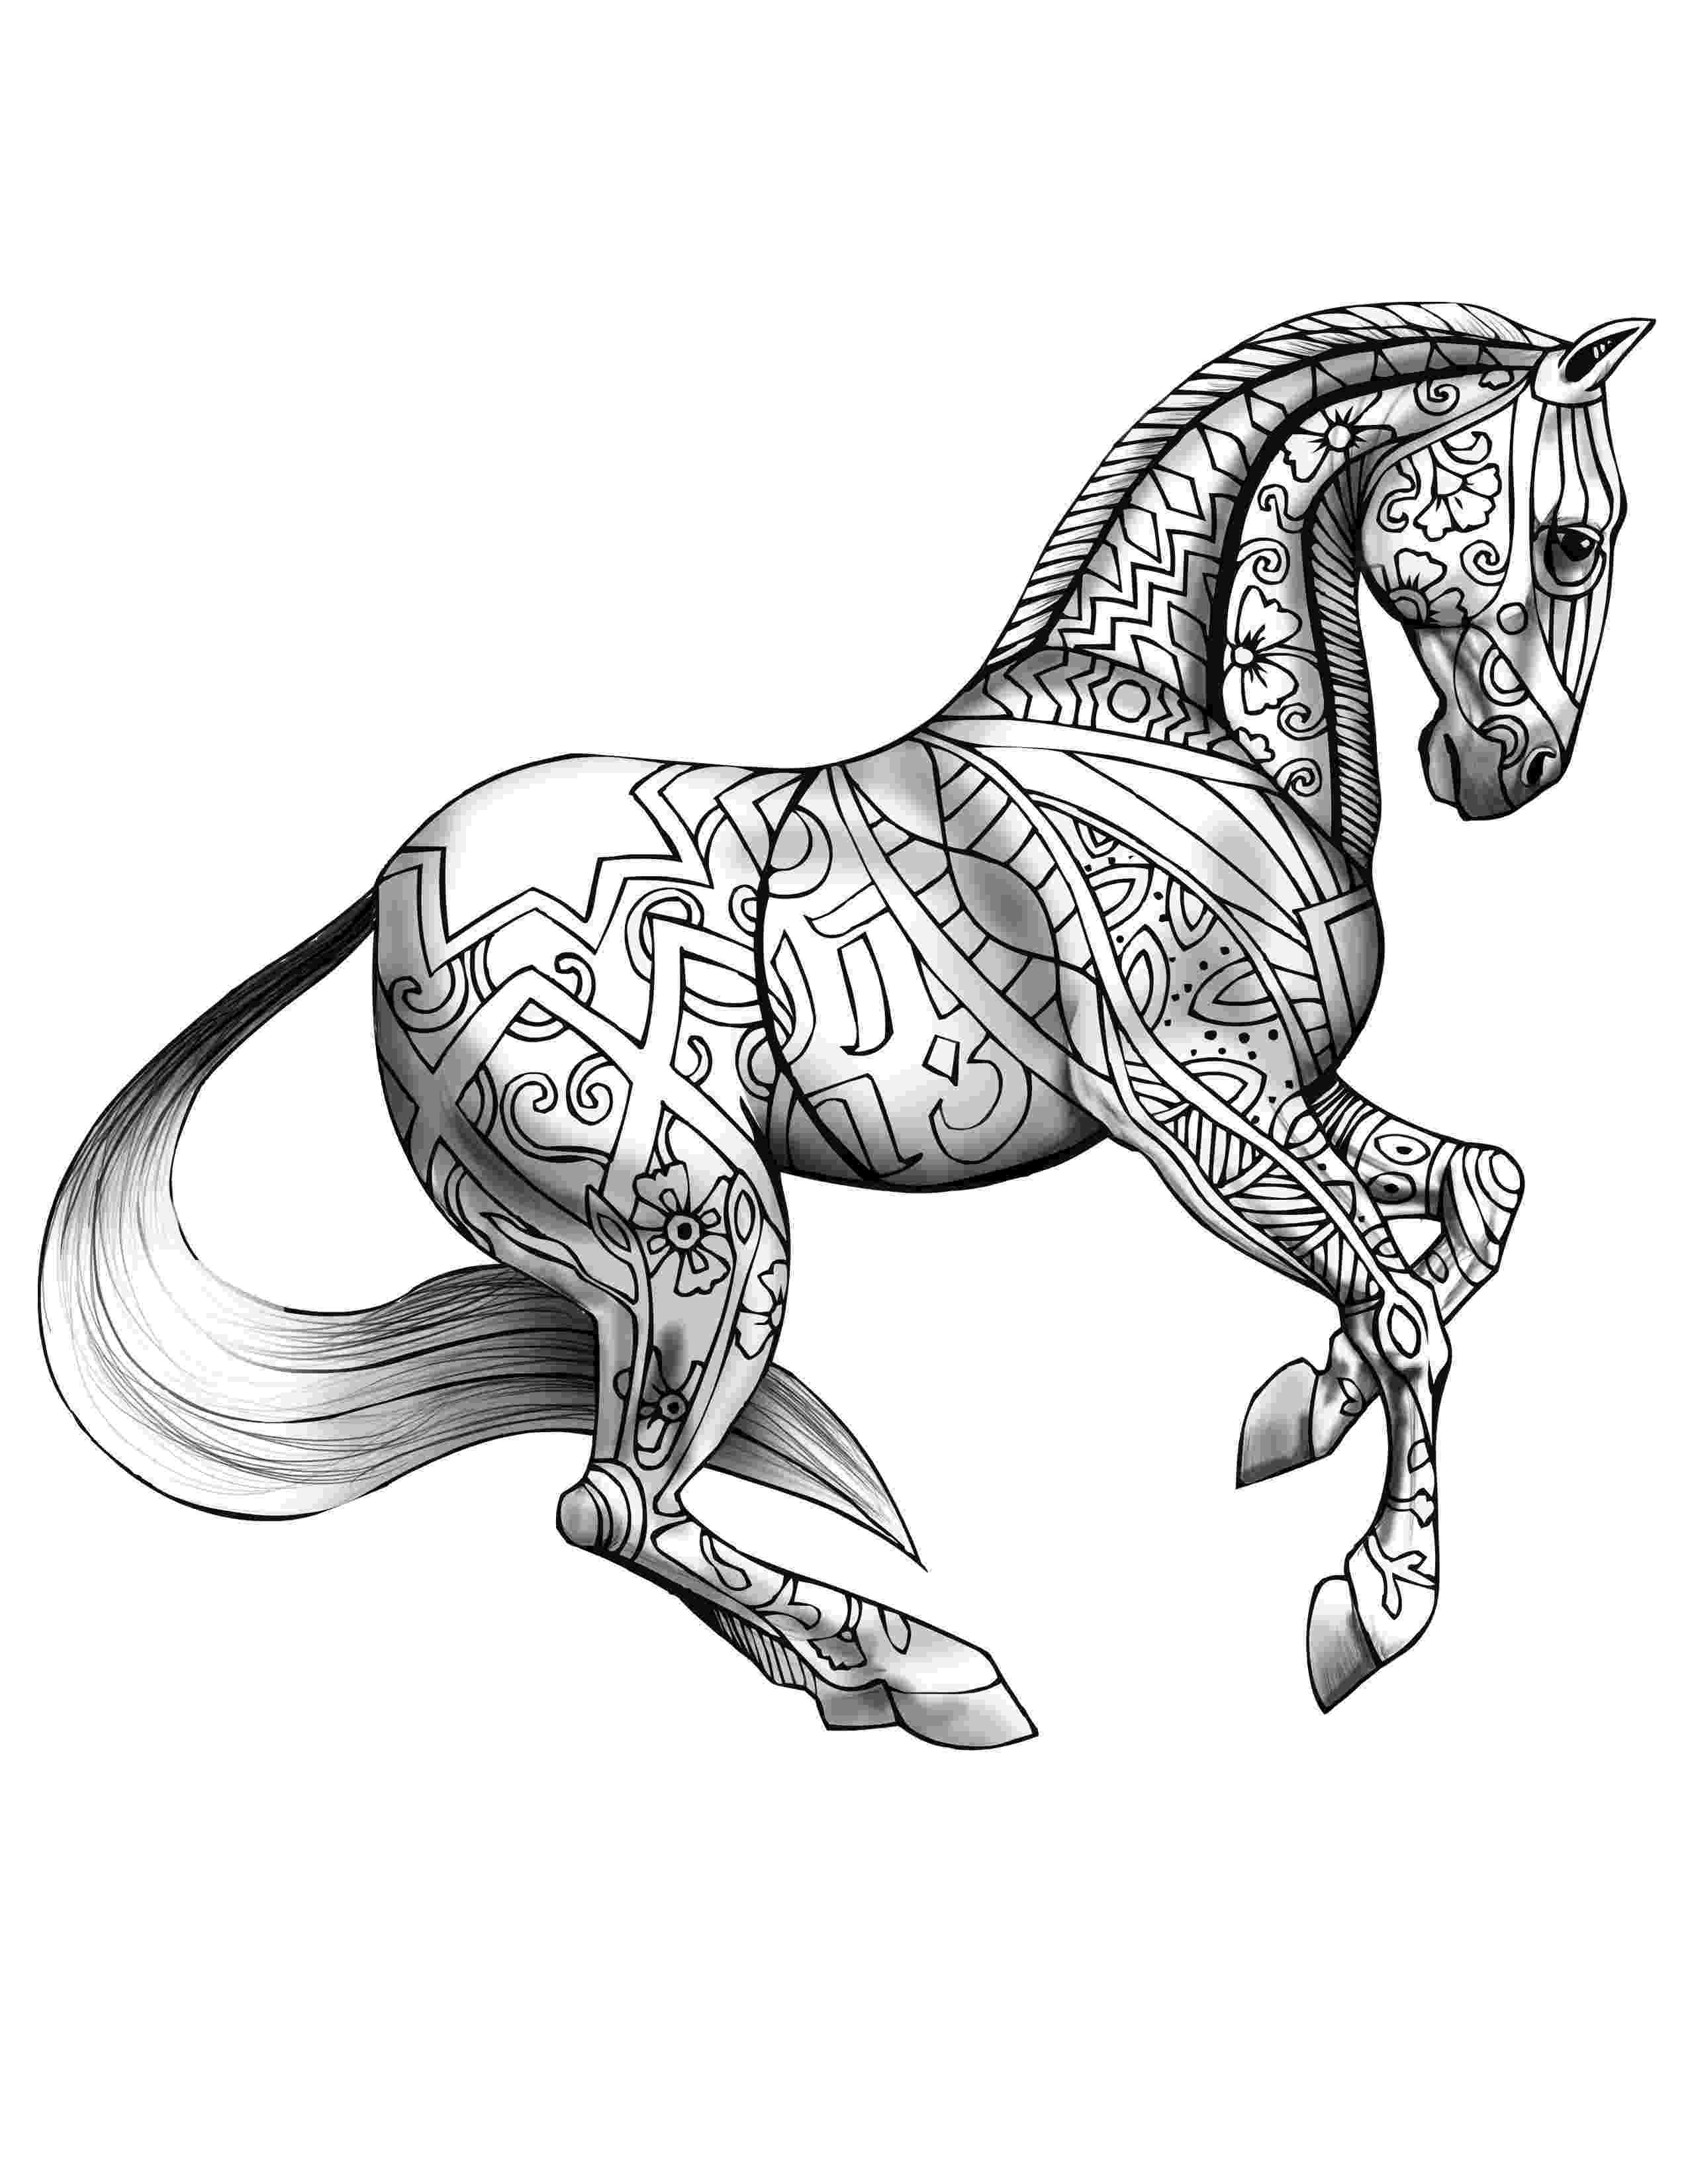 horse printables coloring pages horse coloring pages for adults best coloring pages for kids coloring pages horse printables 1 1